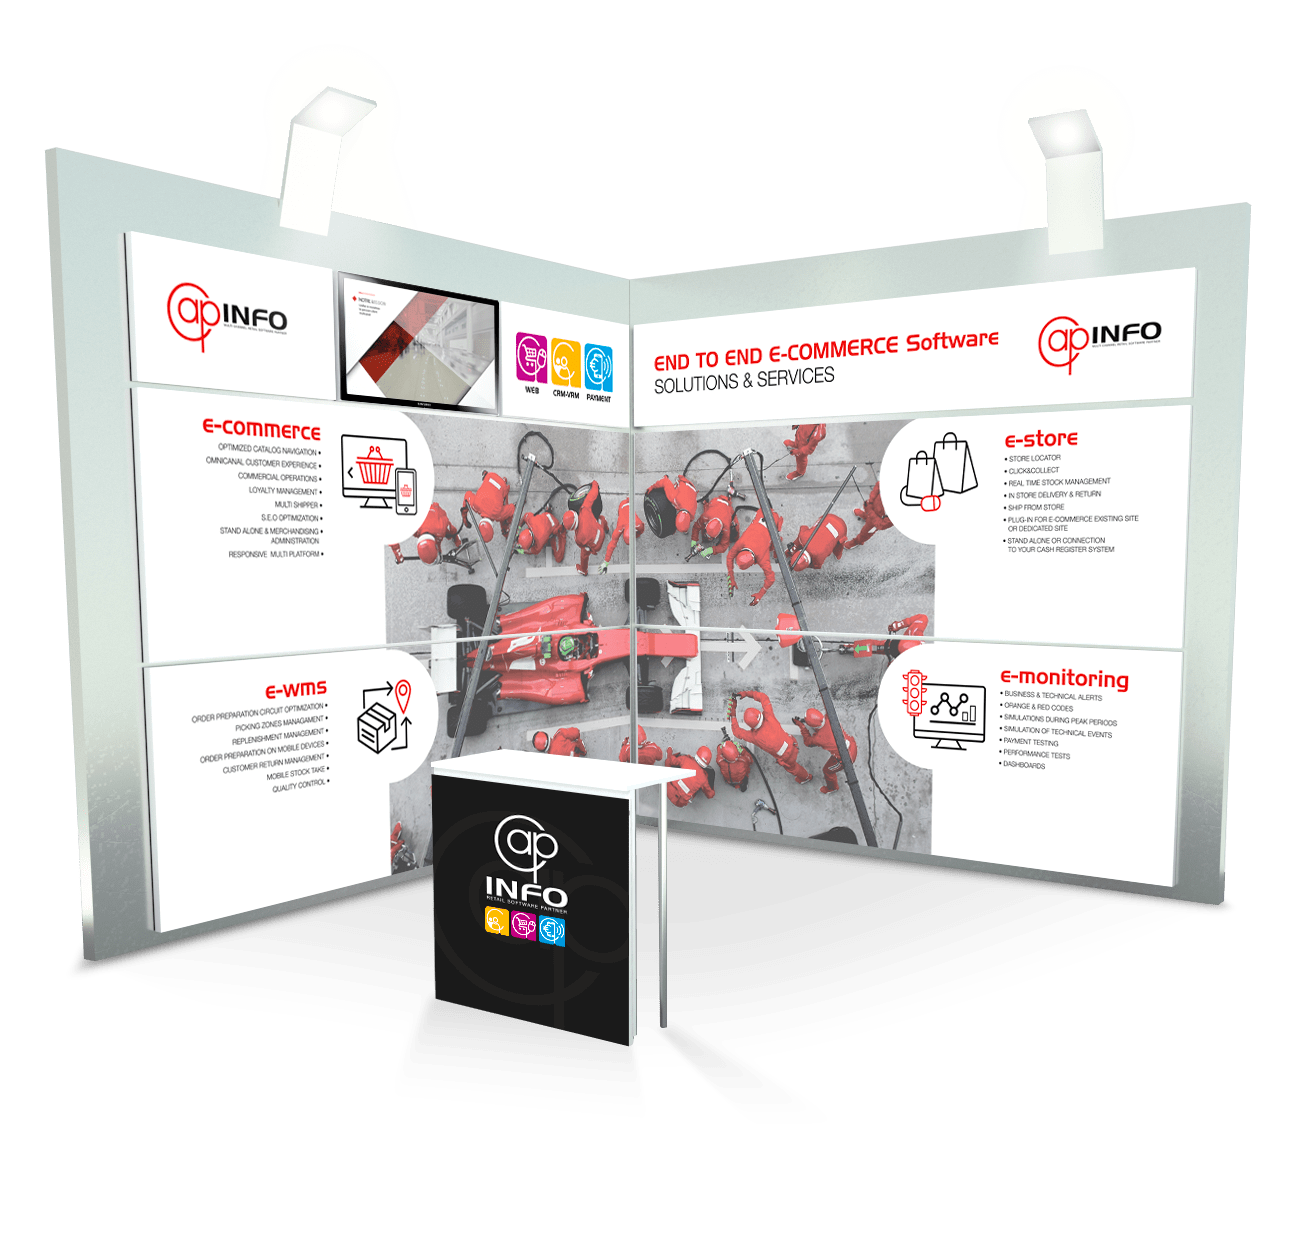 capinfo_stand-3d